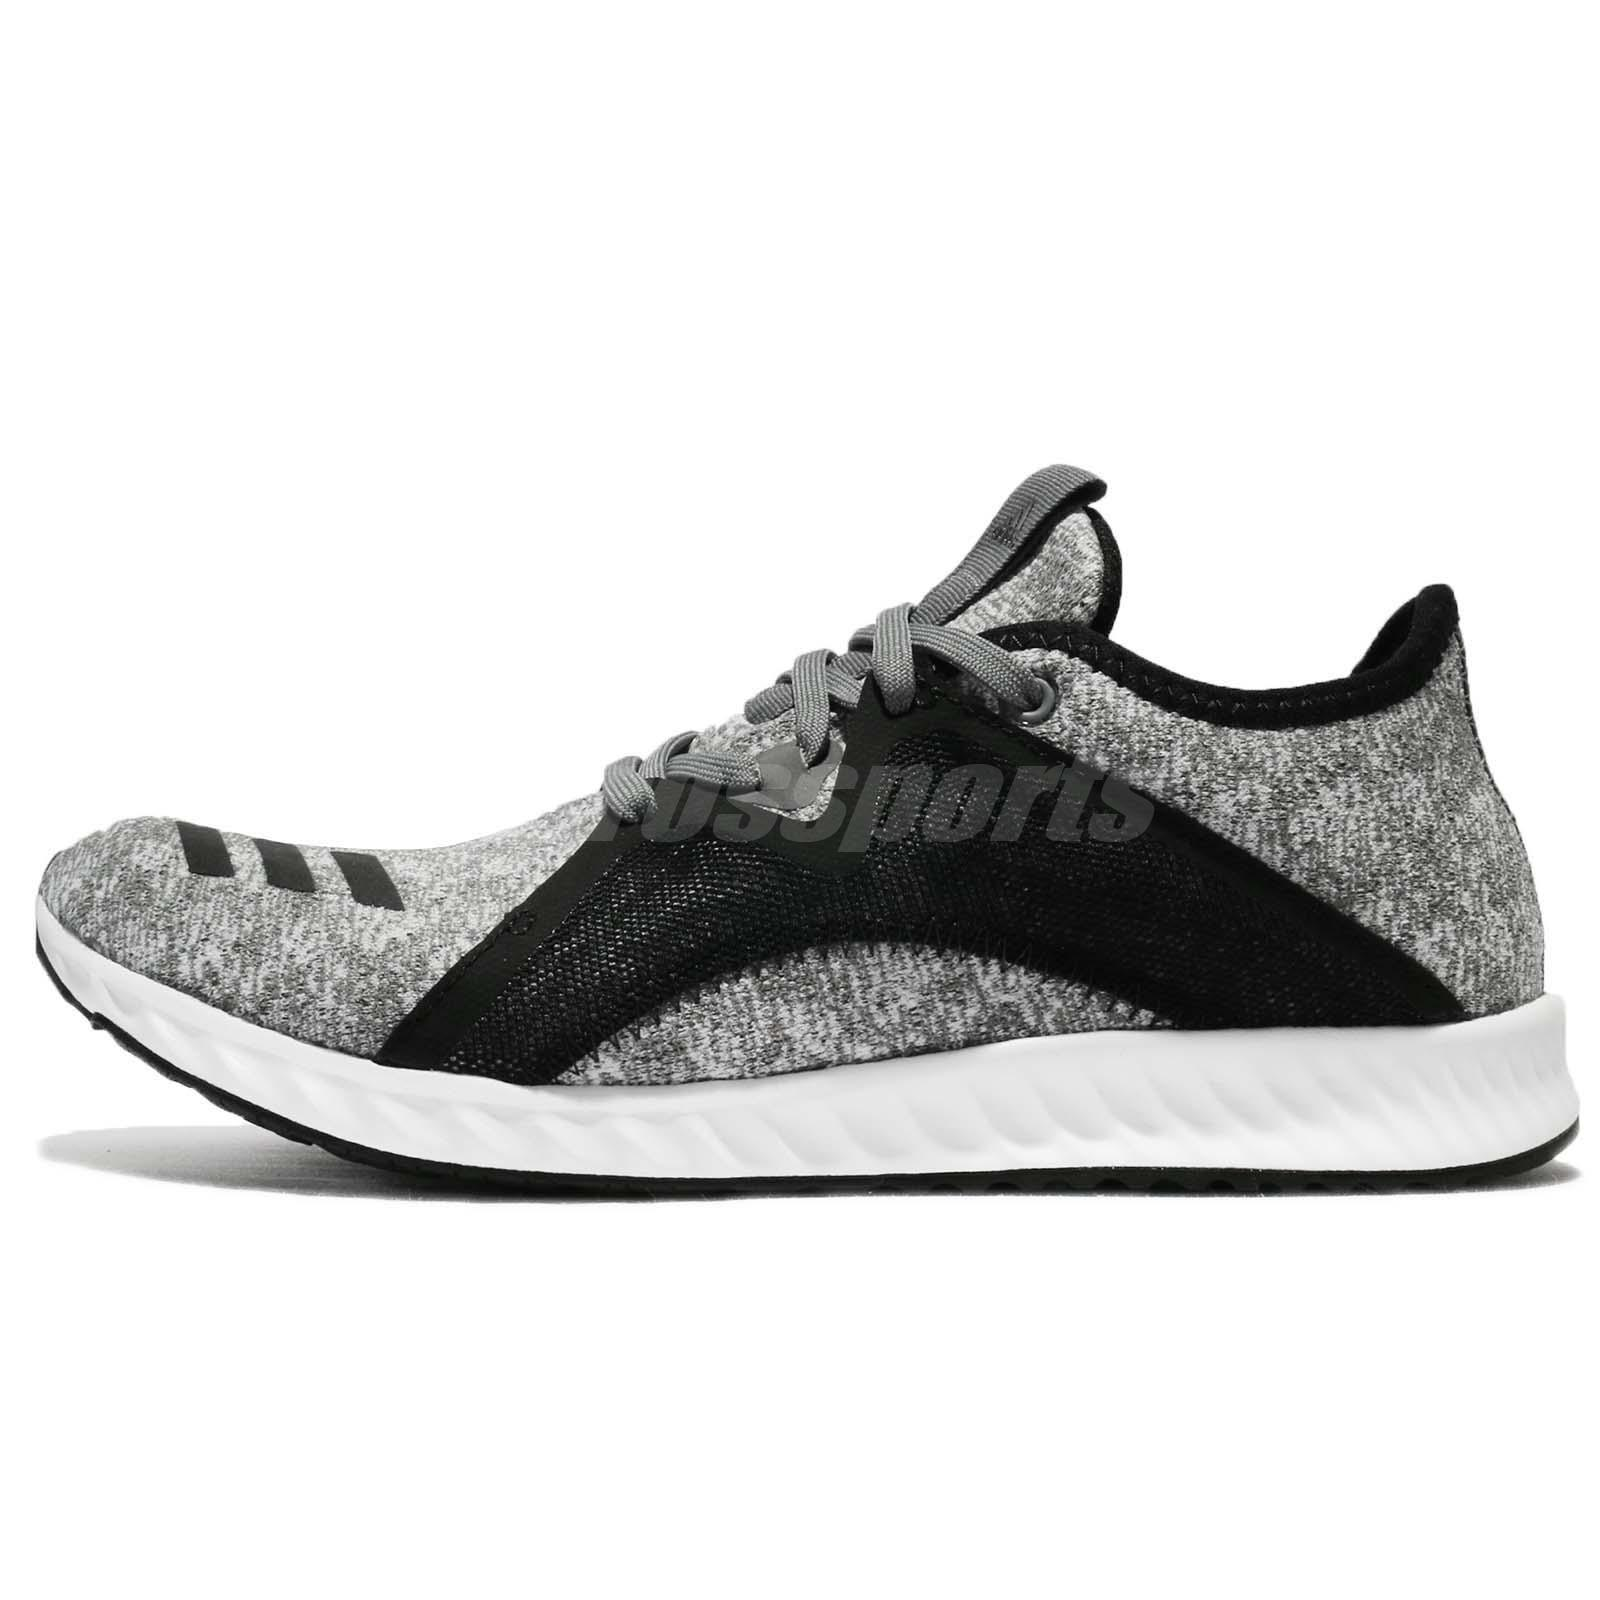 finest selection b363e 85ef6 adidas Edge Lux 2 W Grey Black White Women Running Training Shoes Sneaker  CG4708